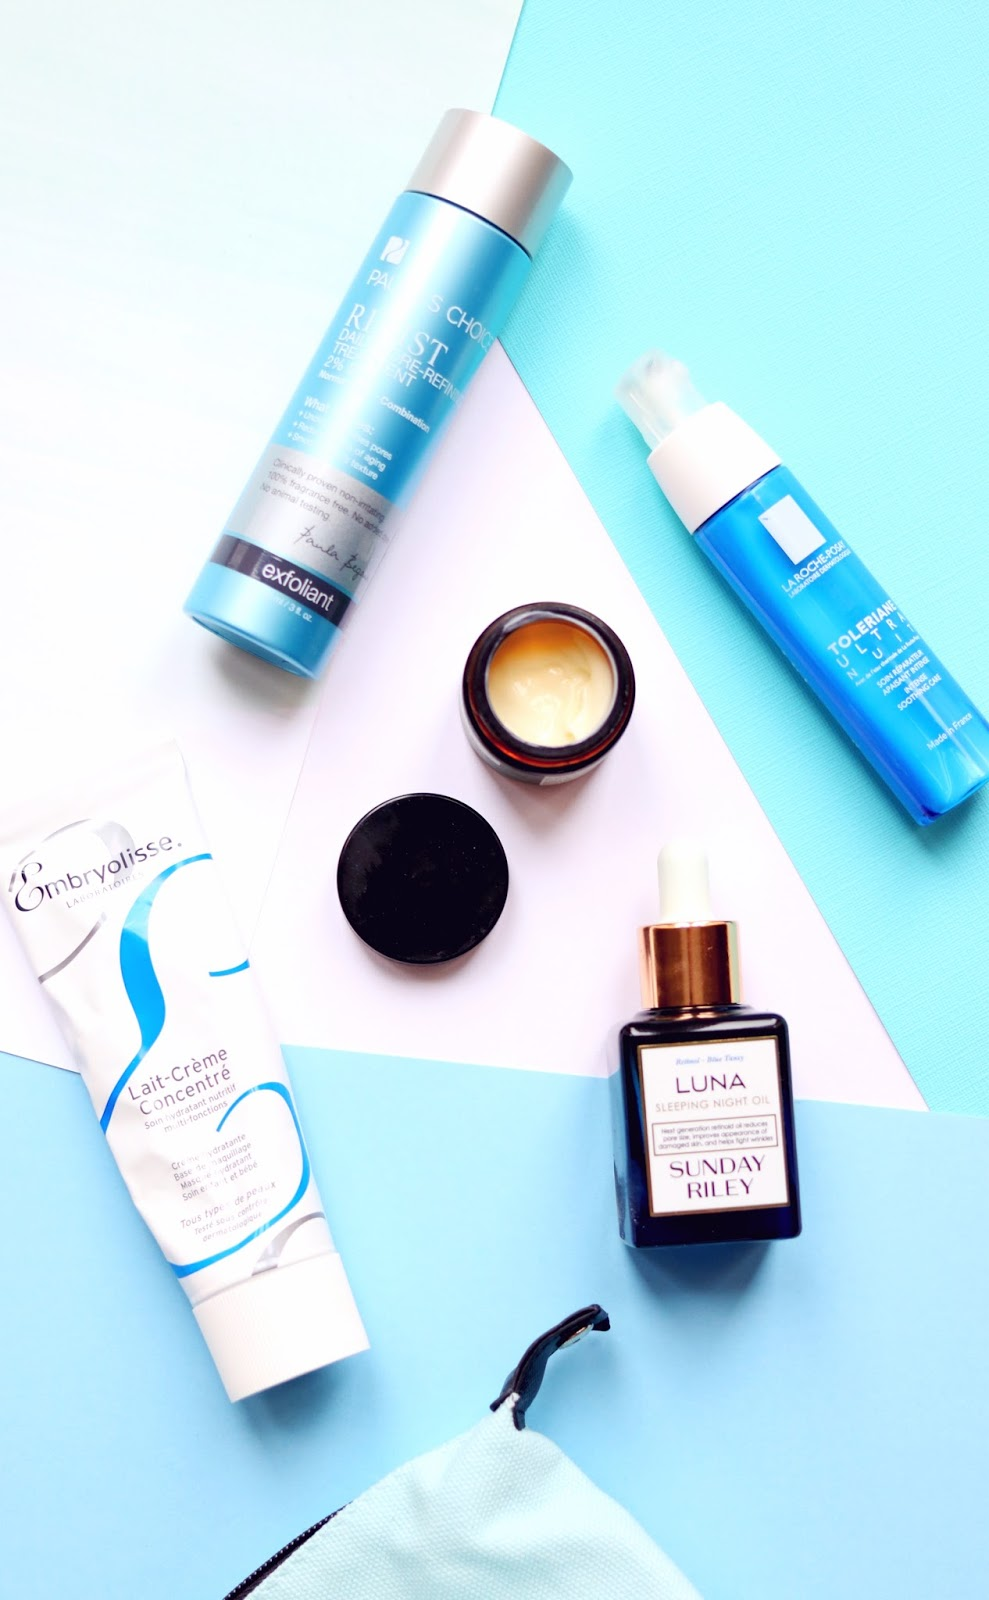 Skincare products featuring Embryolisse, Antipodes, Paula's Choice, La Roche-Posay and Sunday Riley